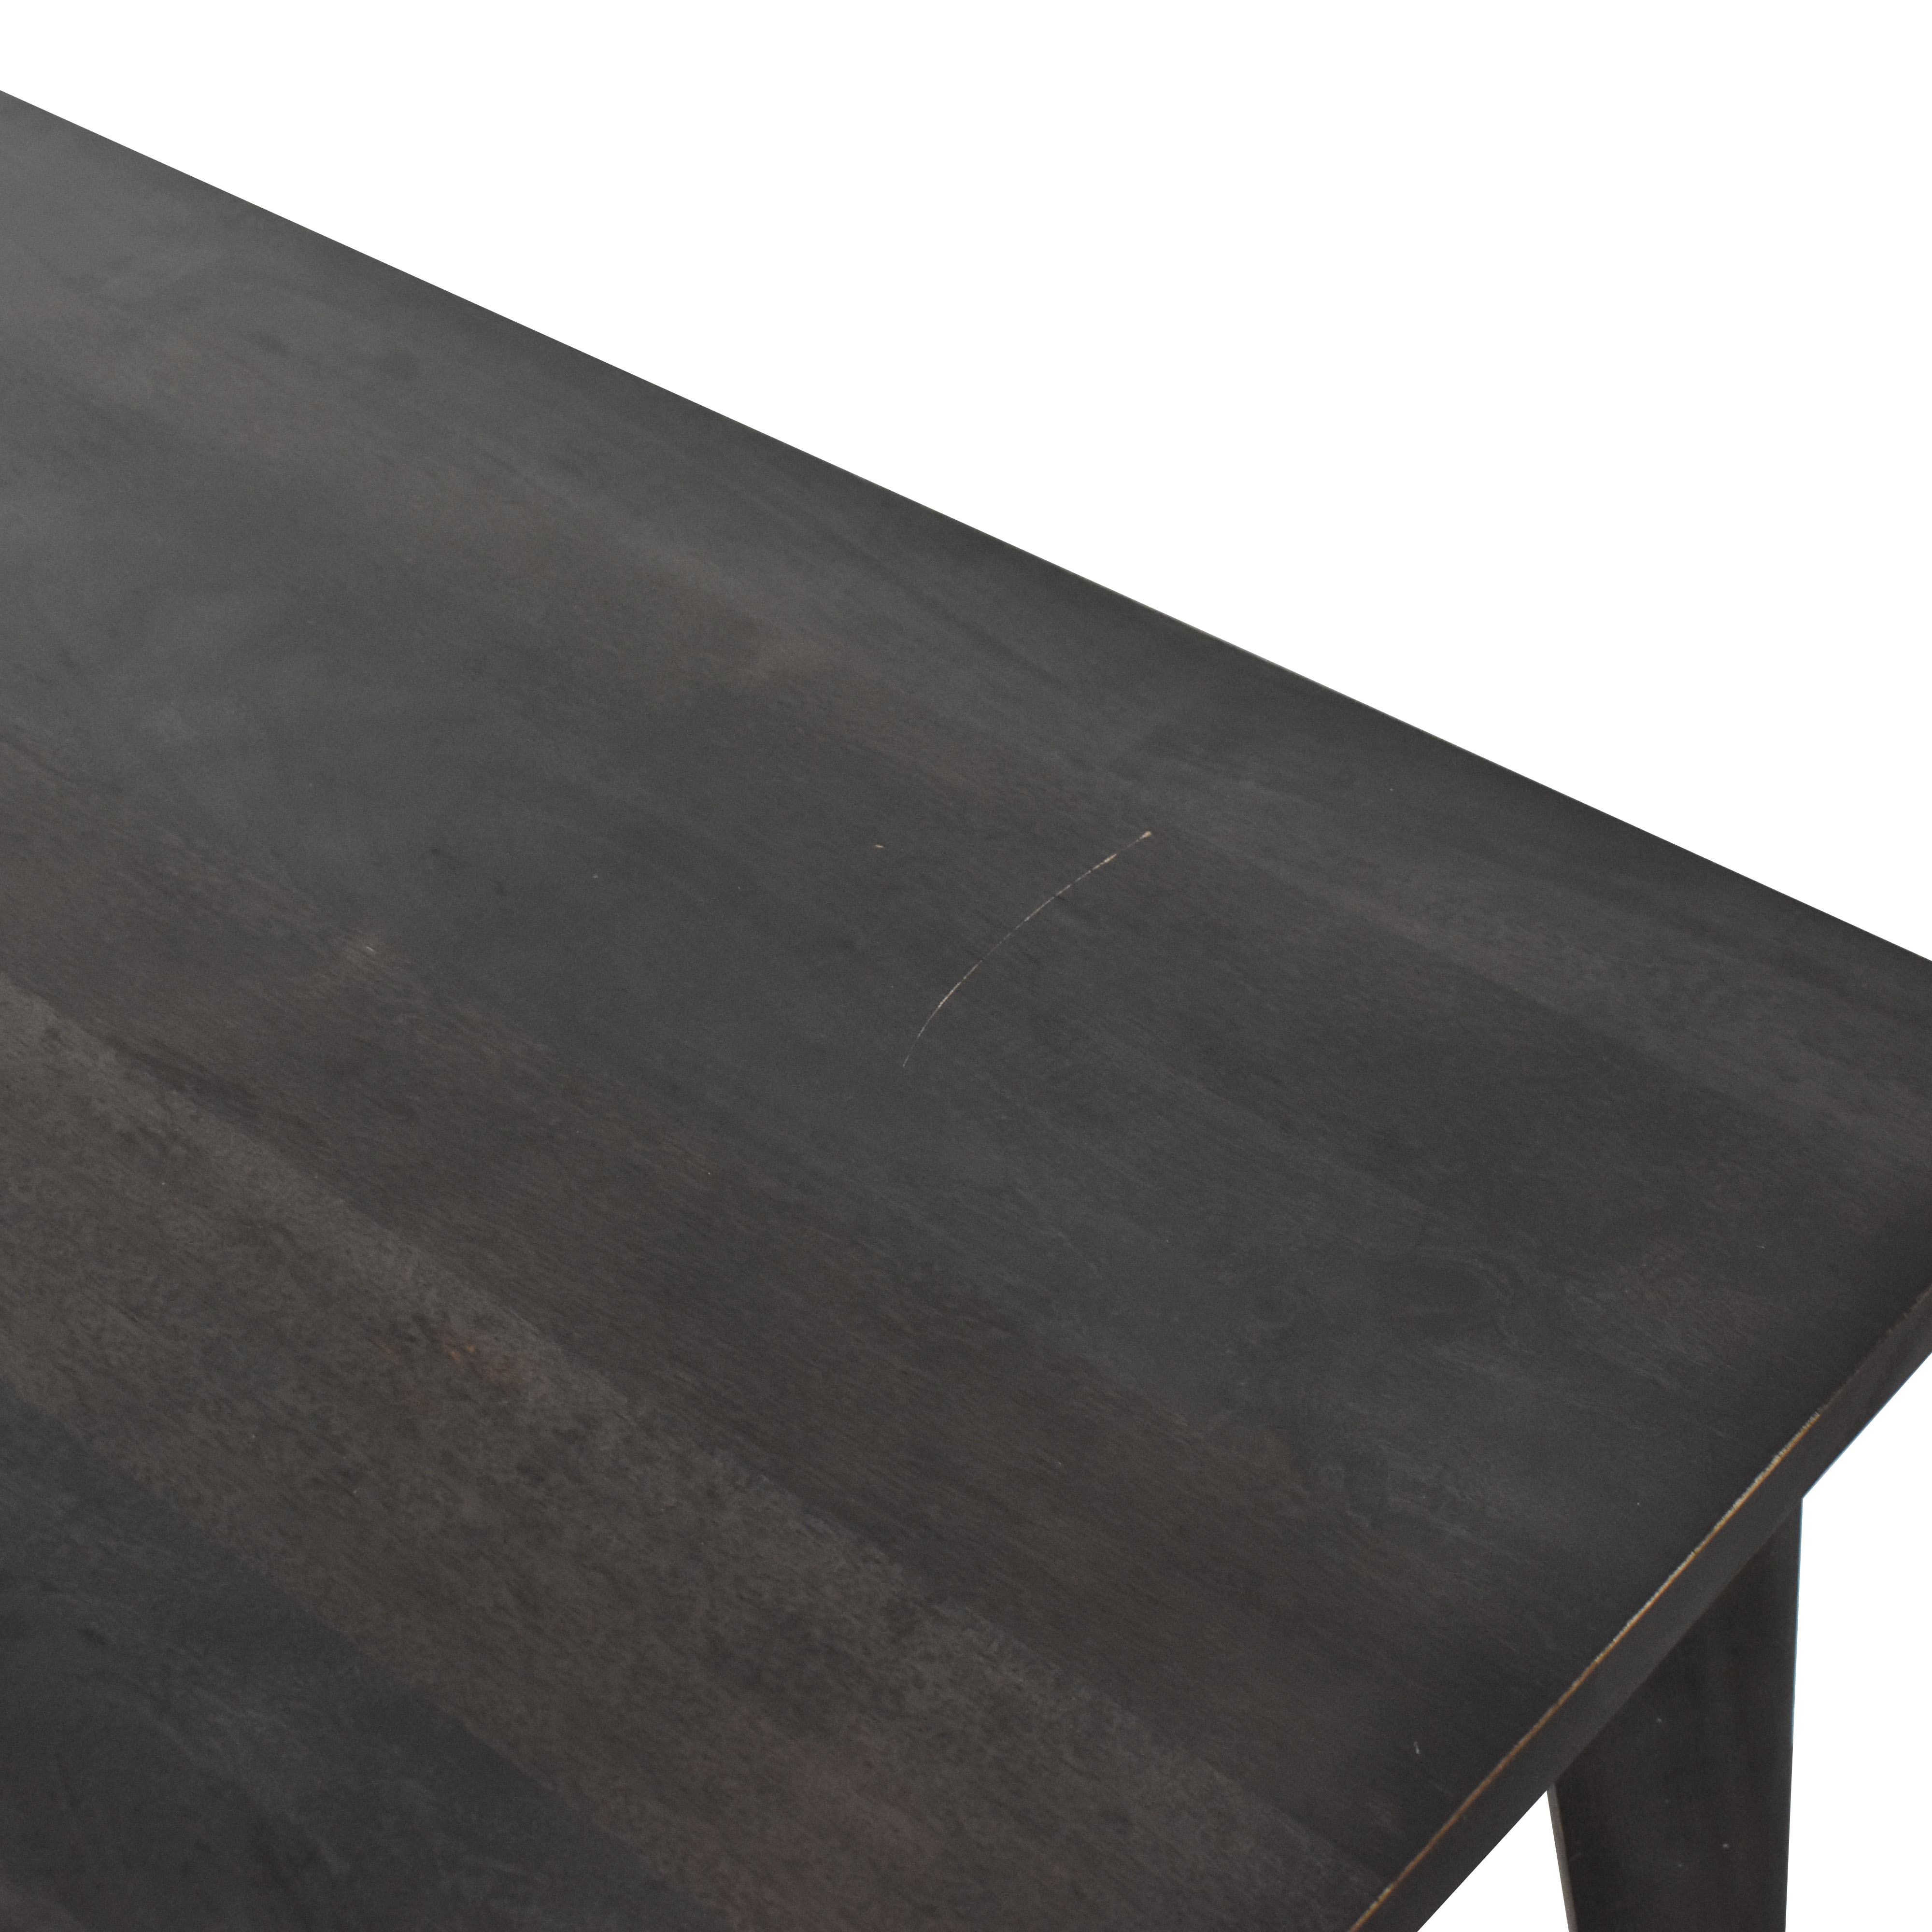 CB2 Finmark Charcoal Dining Table CB2